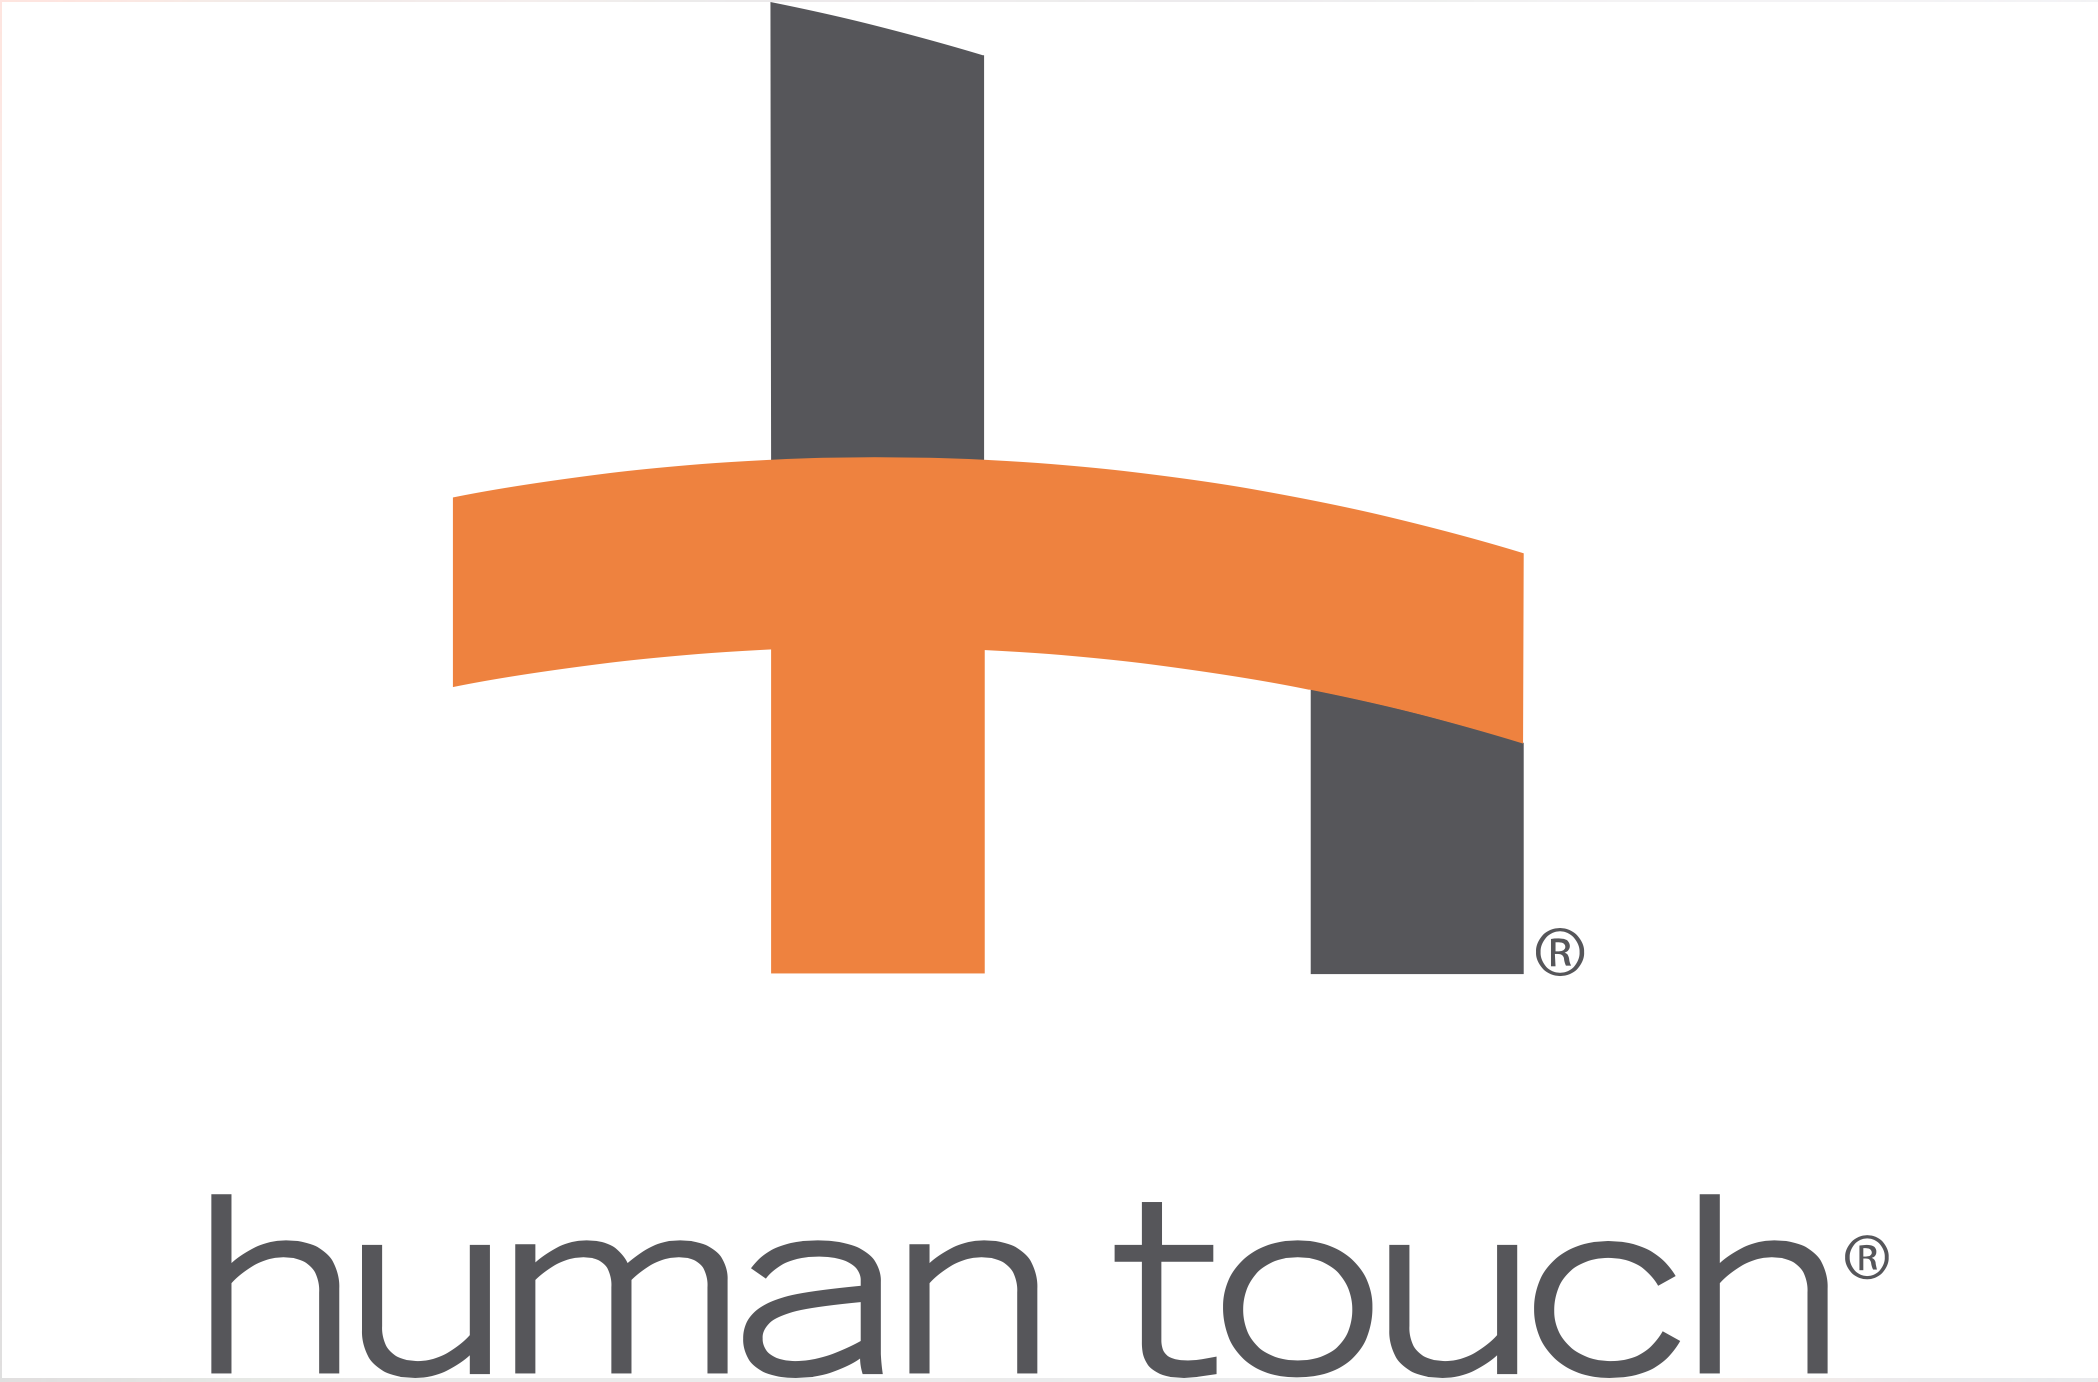 Human touch logo.png